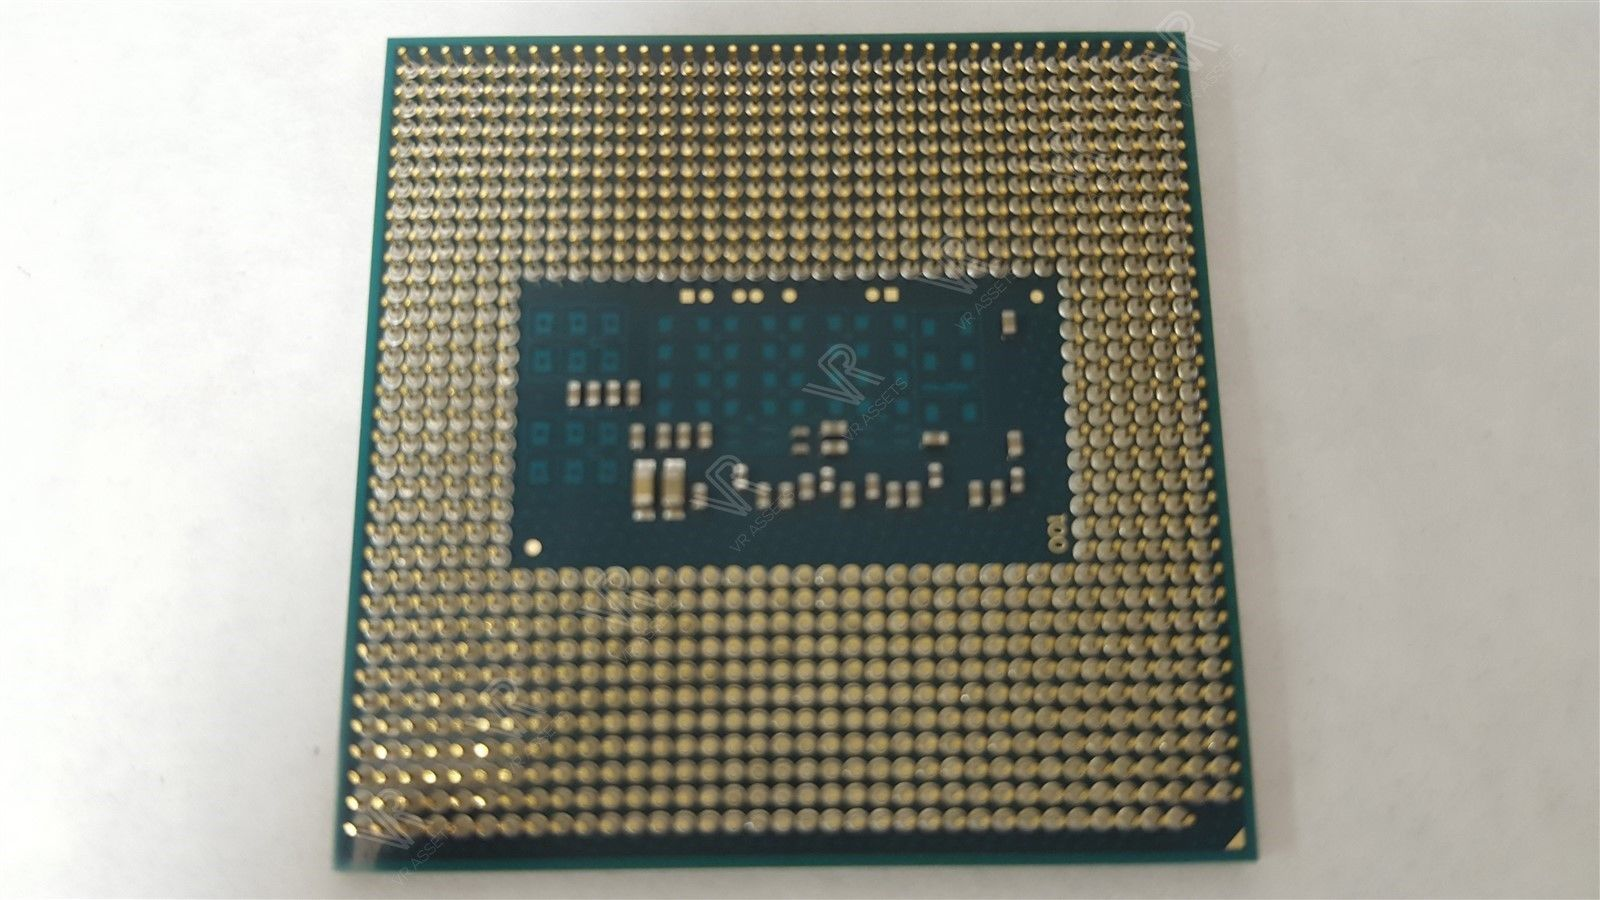 Intel Dual Core i5-4300M 2.6GHz (3.3GHz Turbo) 3Mb Laptop CPU Processor SR1H9